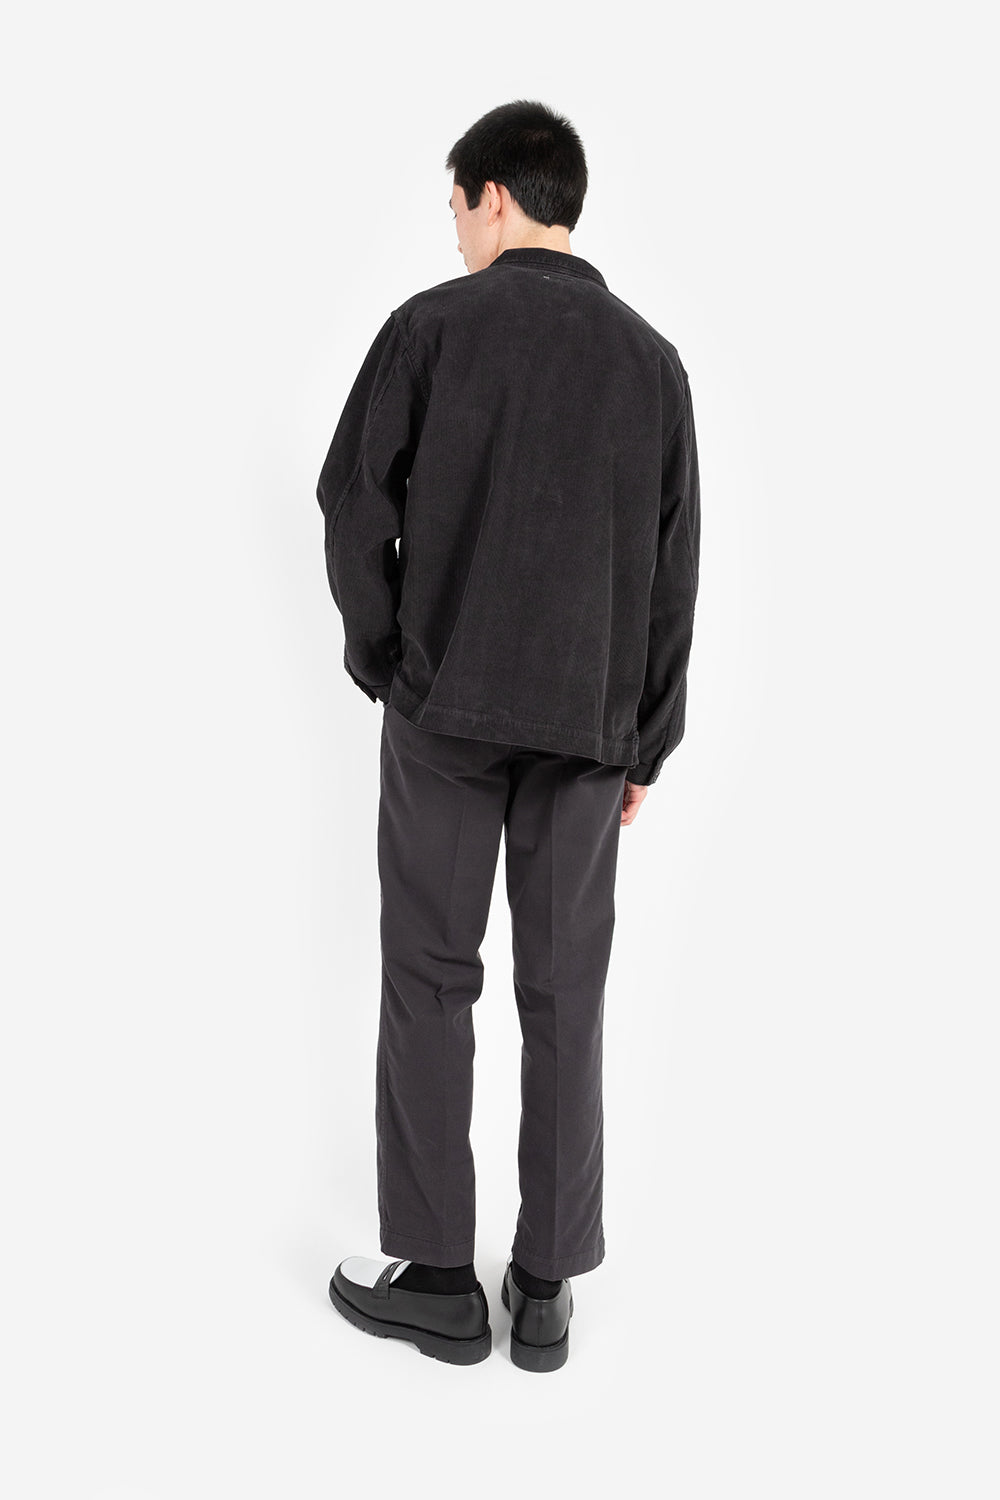 Knickerbocker chore shirt corduroy black front